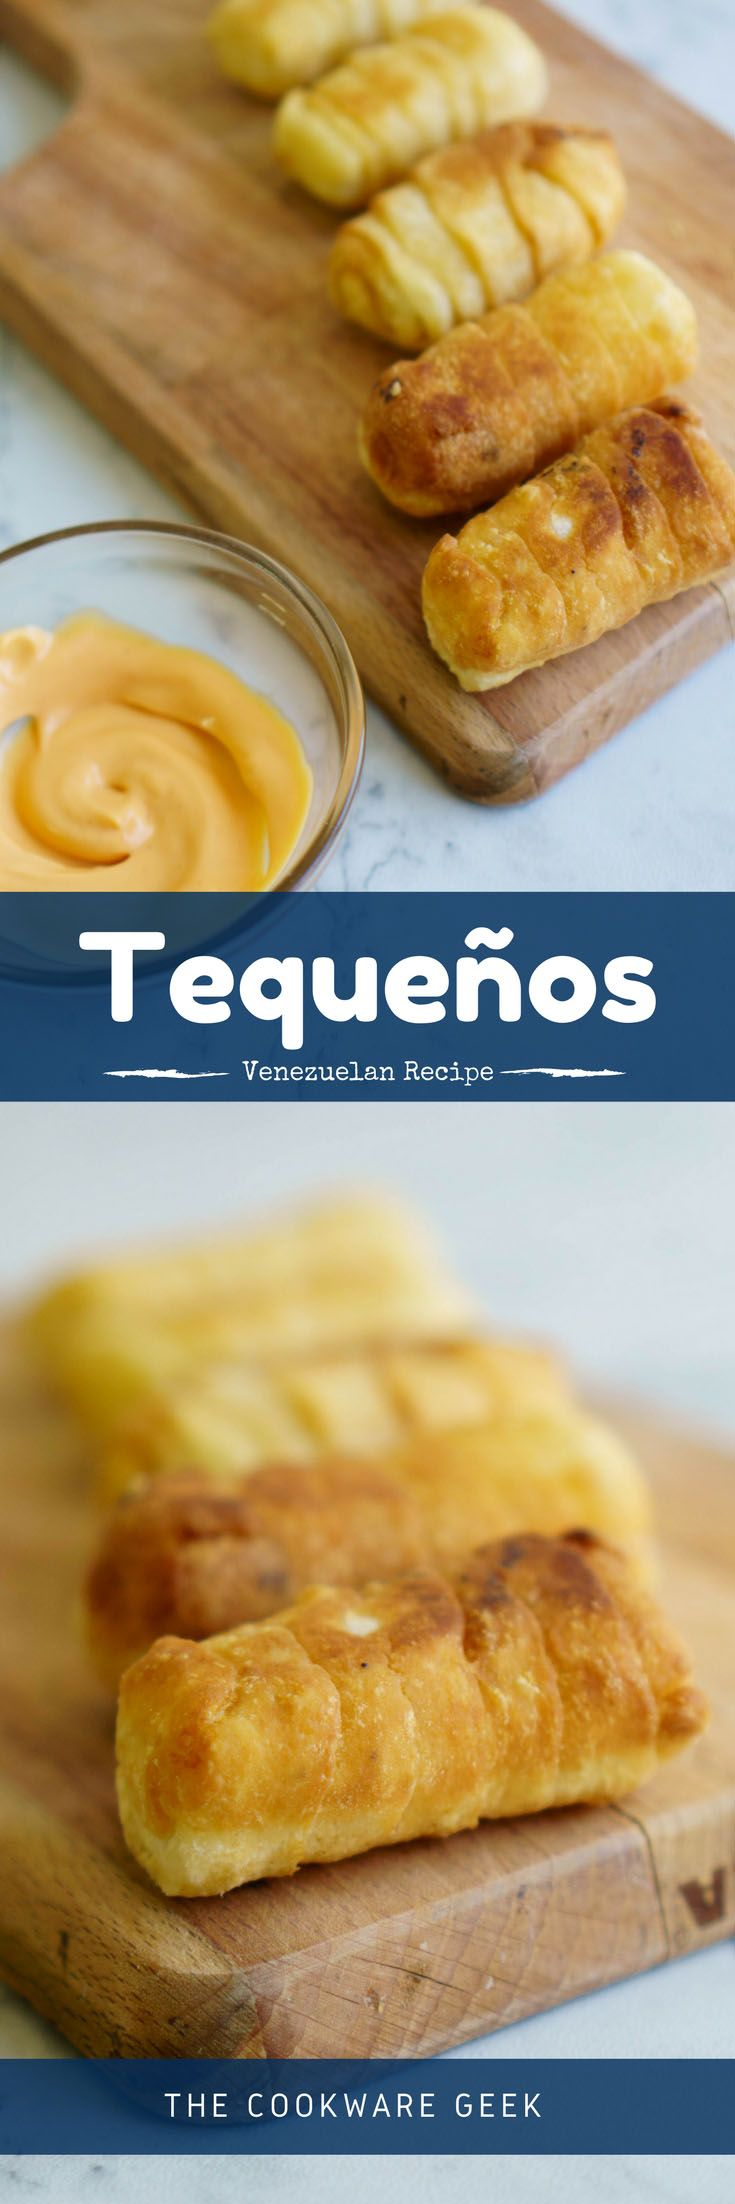 How to Make Tequeños (Venezuelan Cheese Sticks) - The most famous Venezuelan appetizer: Tequeños! Learn how to make   tequeños with this simple recipe step by step (+ instructional video) | The Cookware Geek